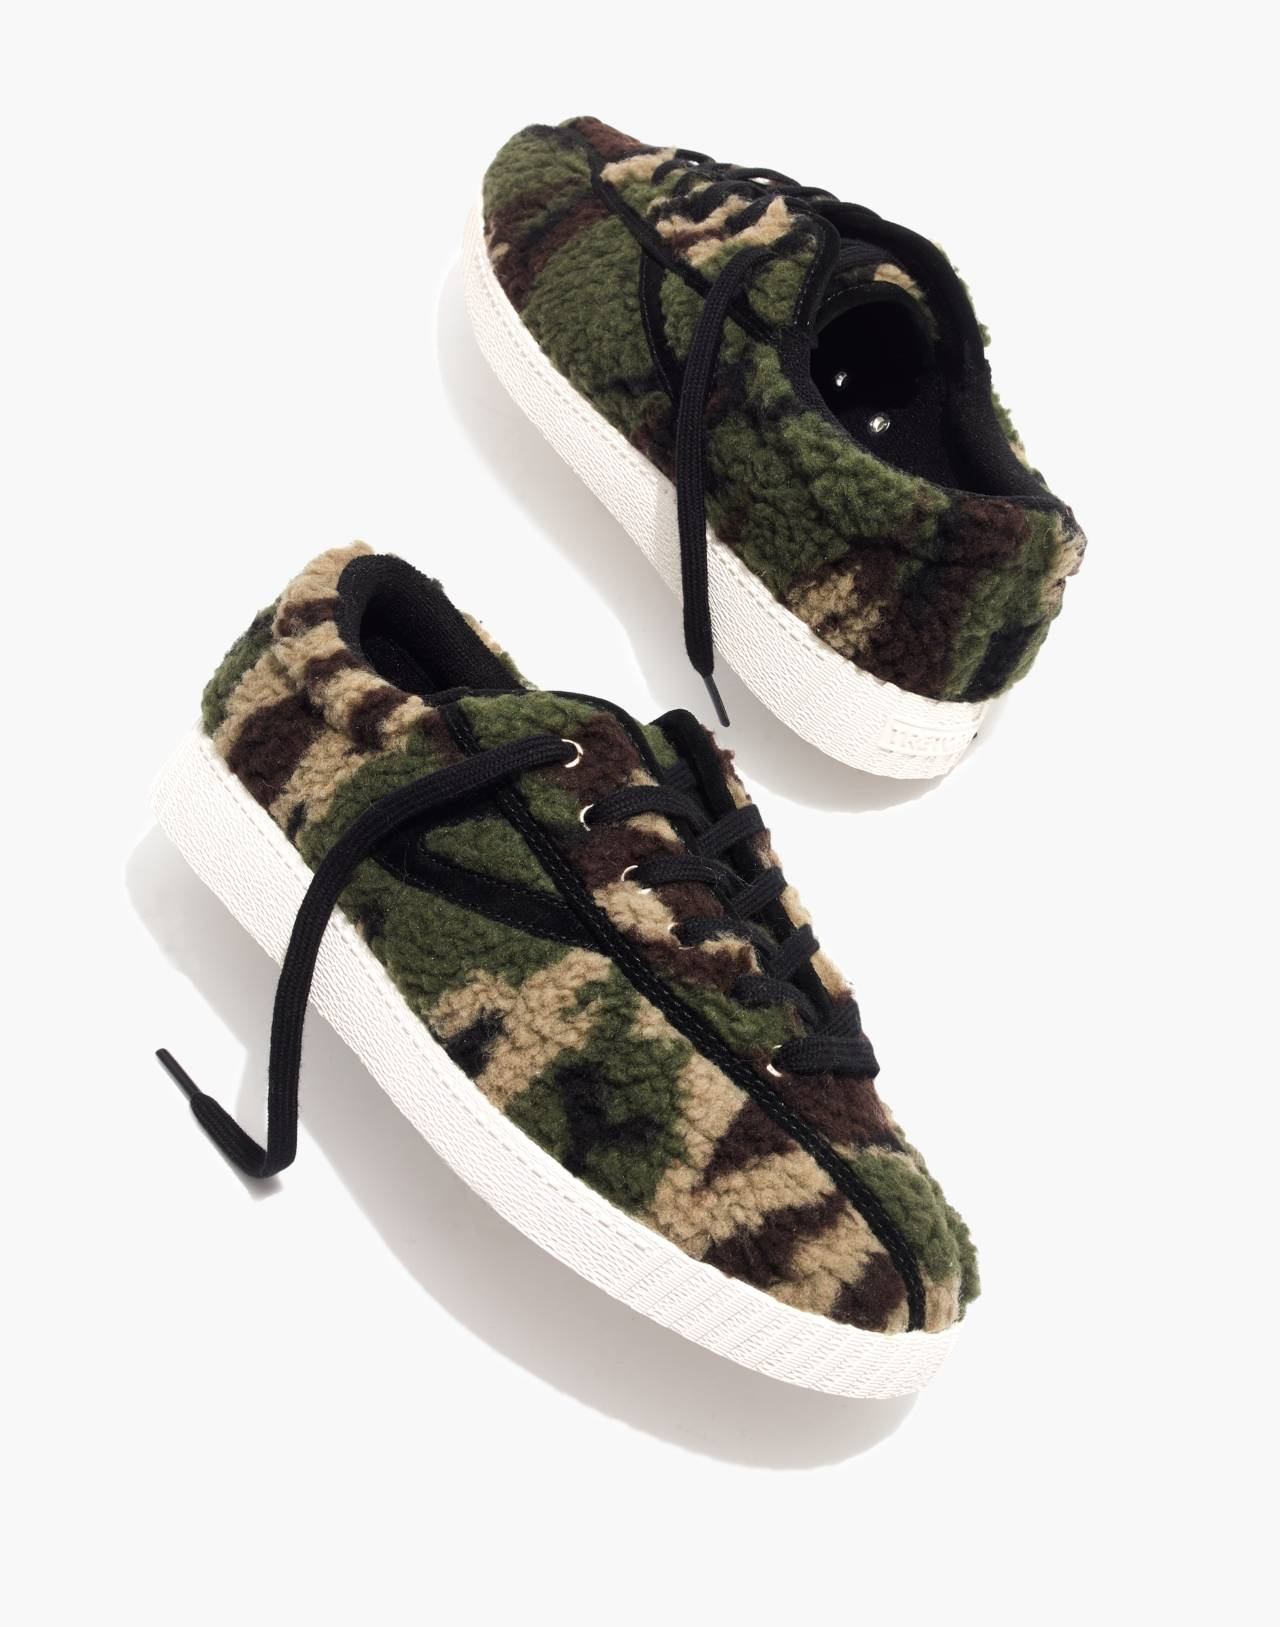 Tretorn® Nylite Plus Sneakers in Camo Faux Shearling in olive black image 1